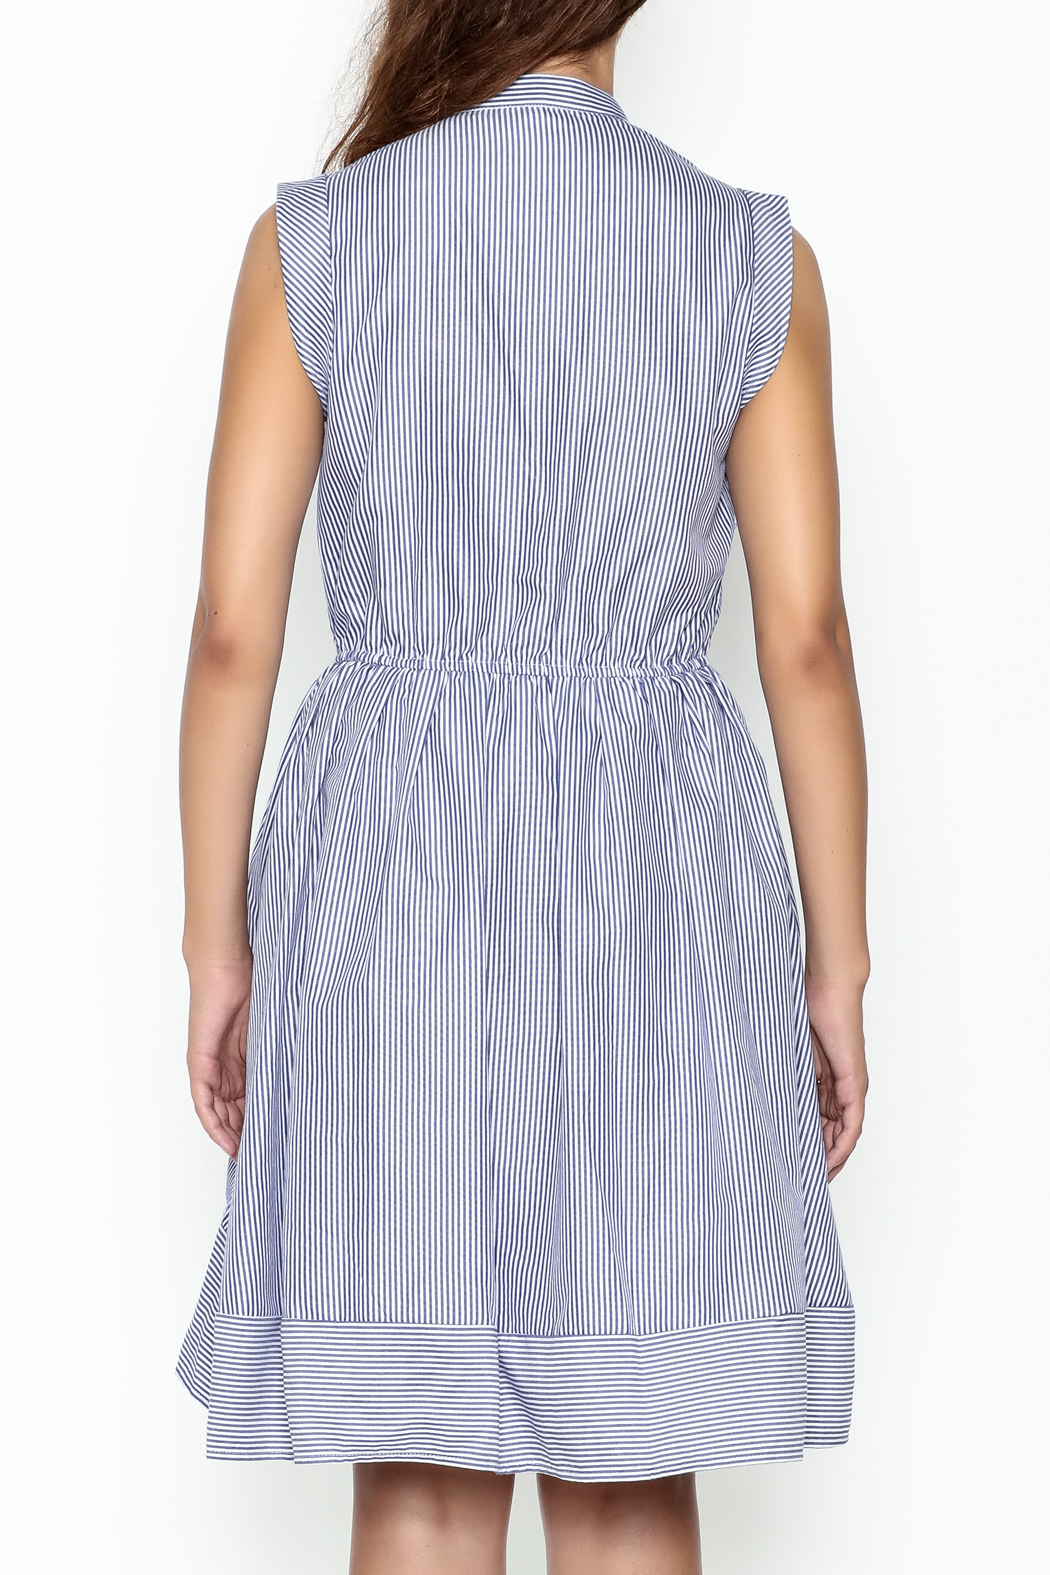 Lucy Paris Striped Fit & Flare Dress - Back Cropped Image